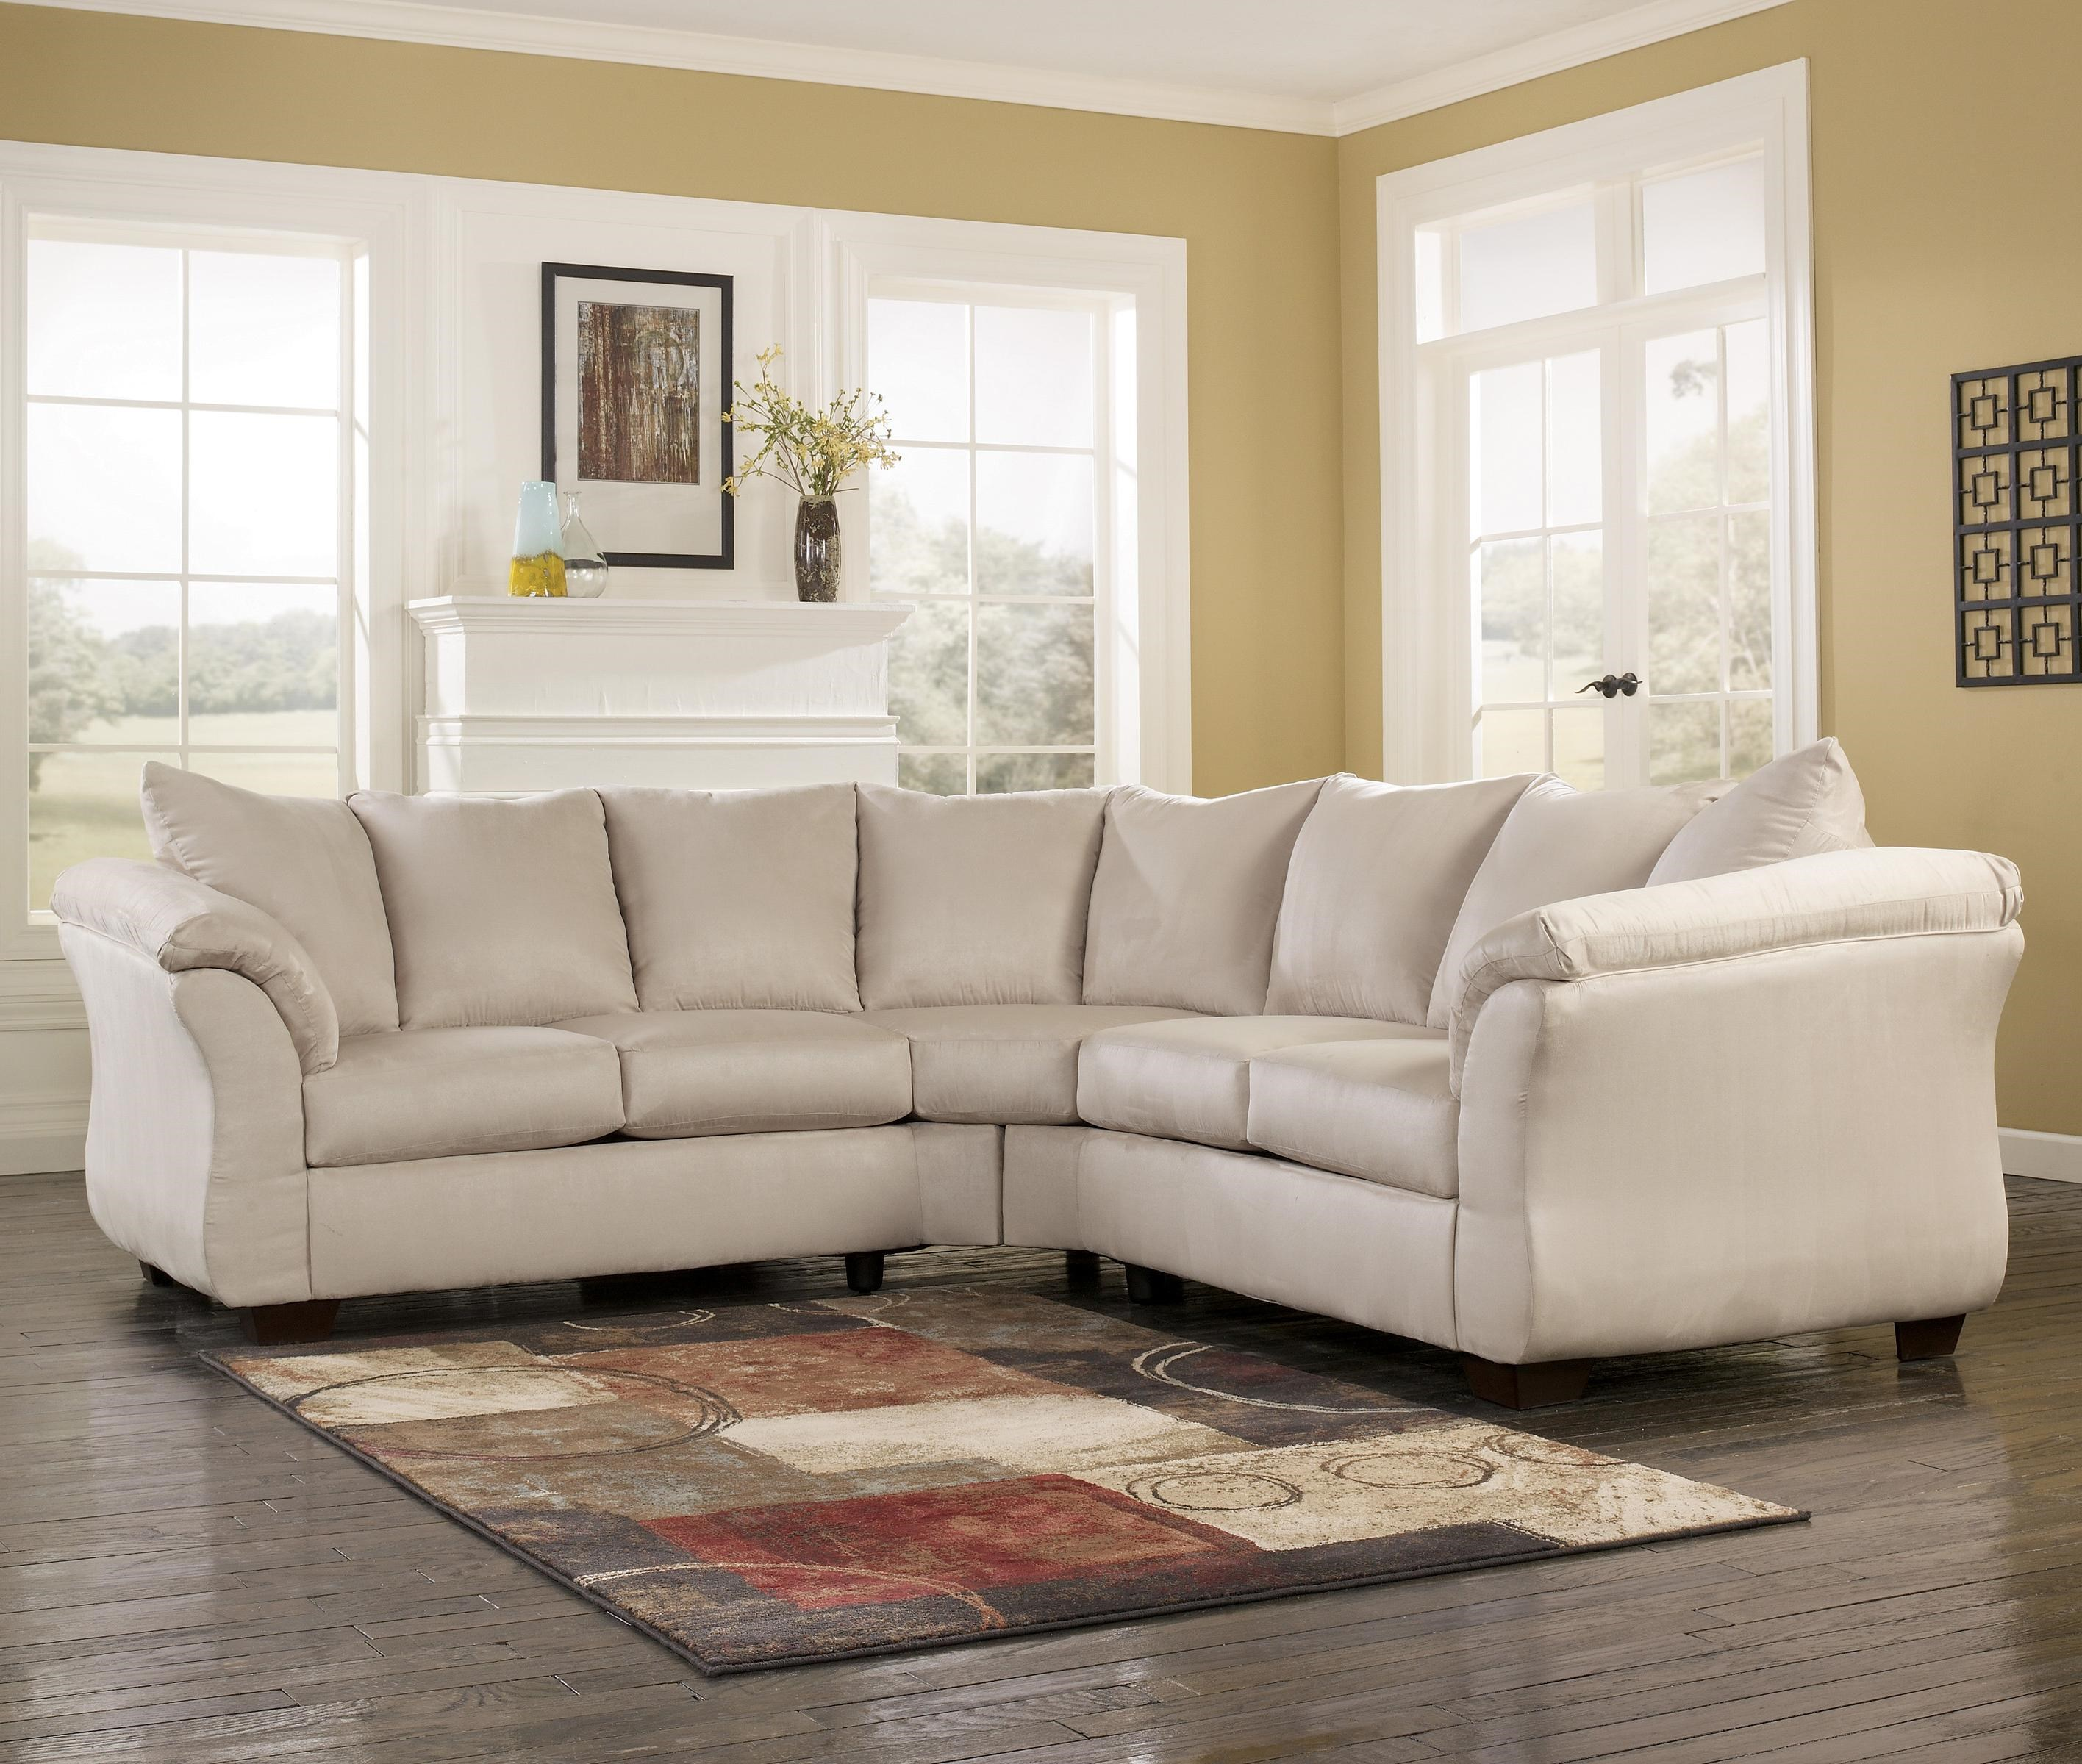 Signature Design By Ashley Darcy   Stone Contemporary Sectional Sofa With  Sweeping Pillow Arms